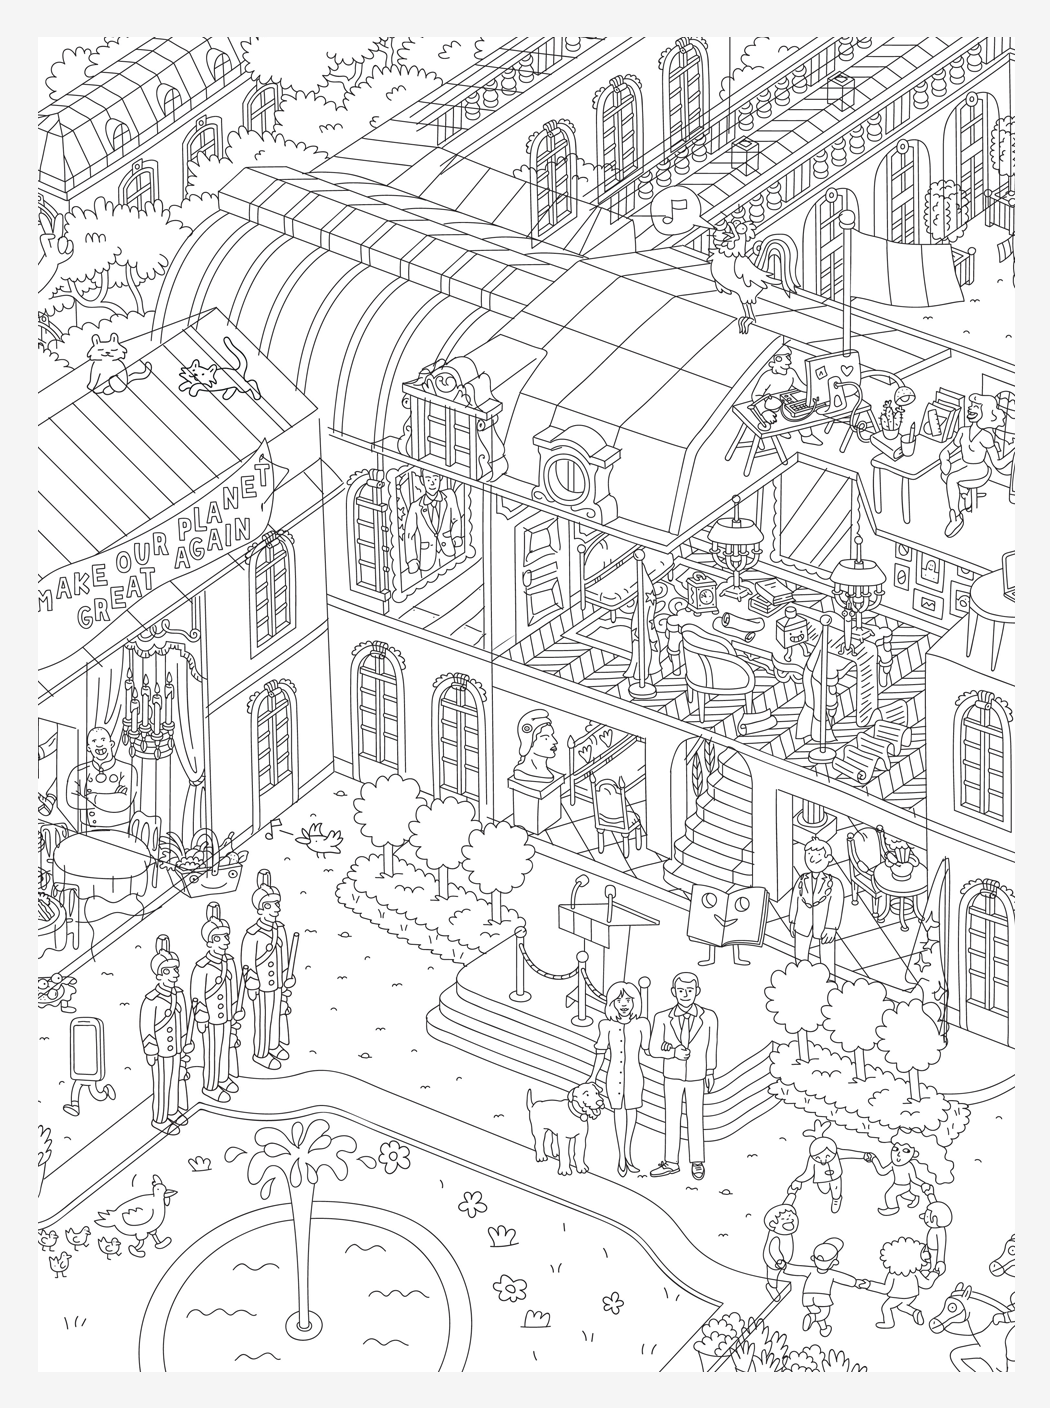 Coloriage Omy.Giant Colour In Palais De L Elysee Poster X Omy Studio